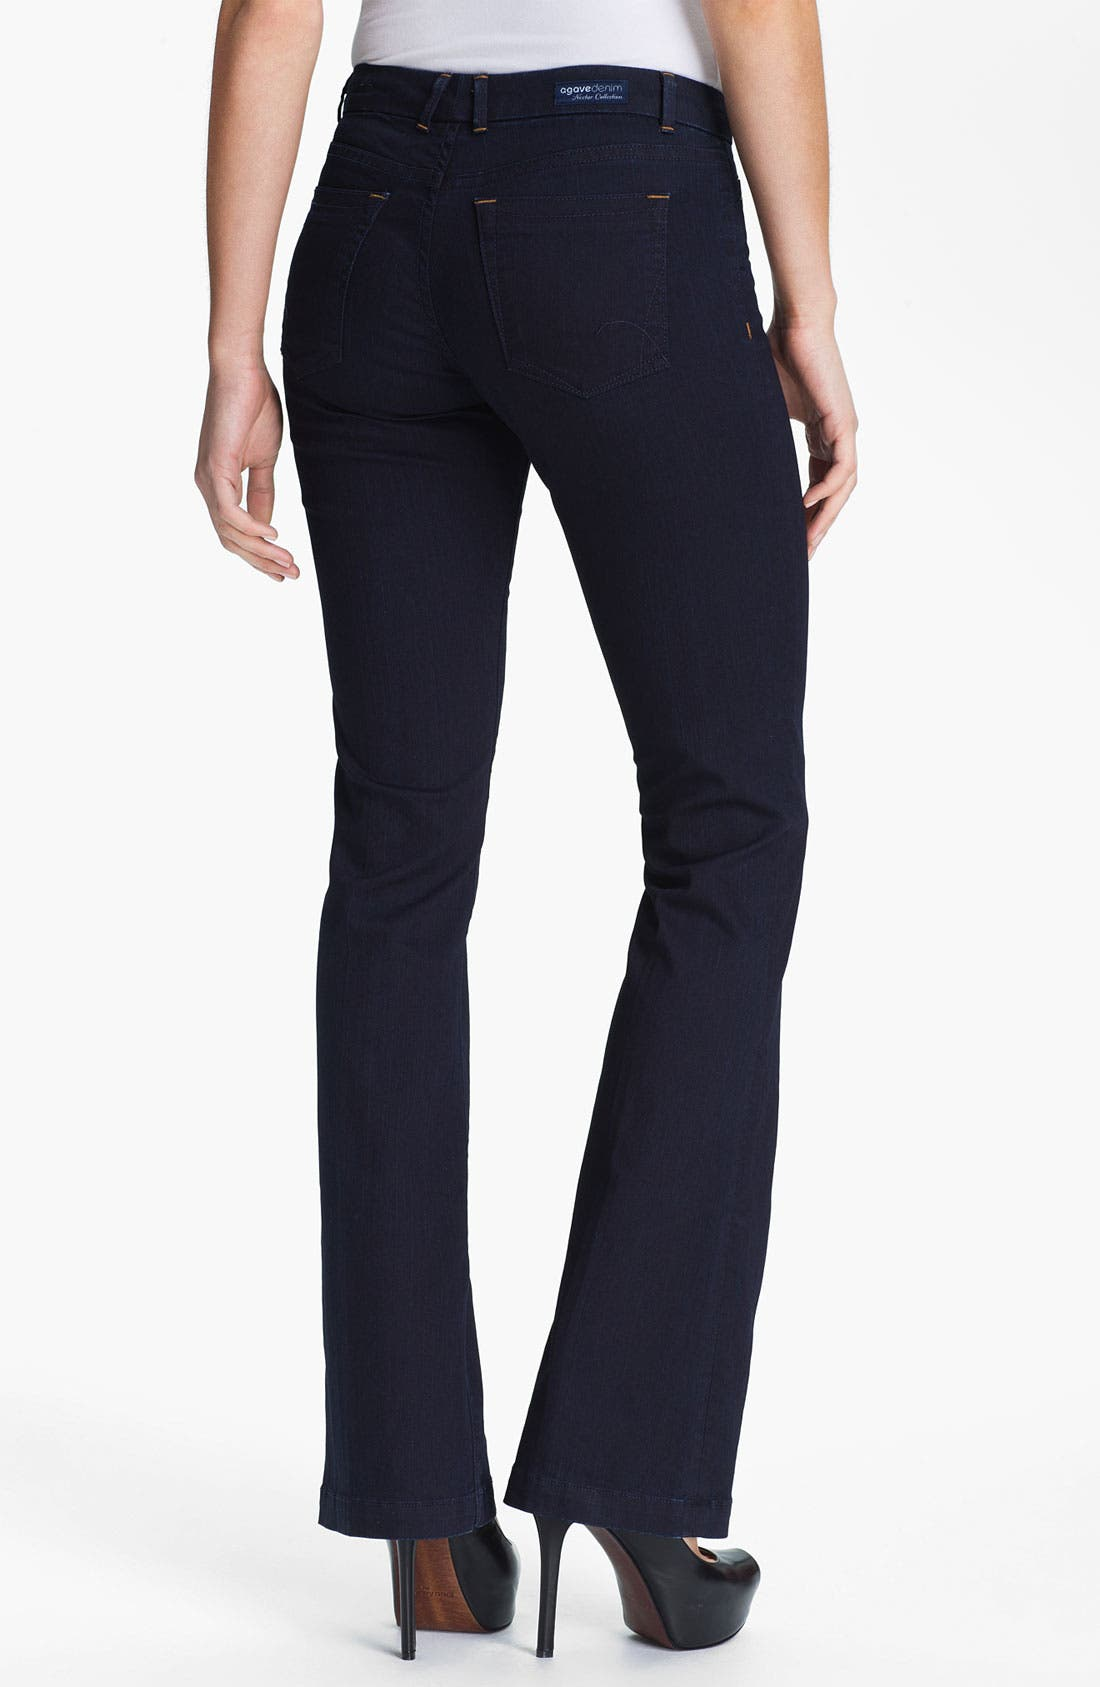 Alternate Image 2  - Agave 'Fortuna' Trouser Jeans (Lookout) (Online Exclusive)